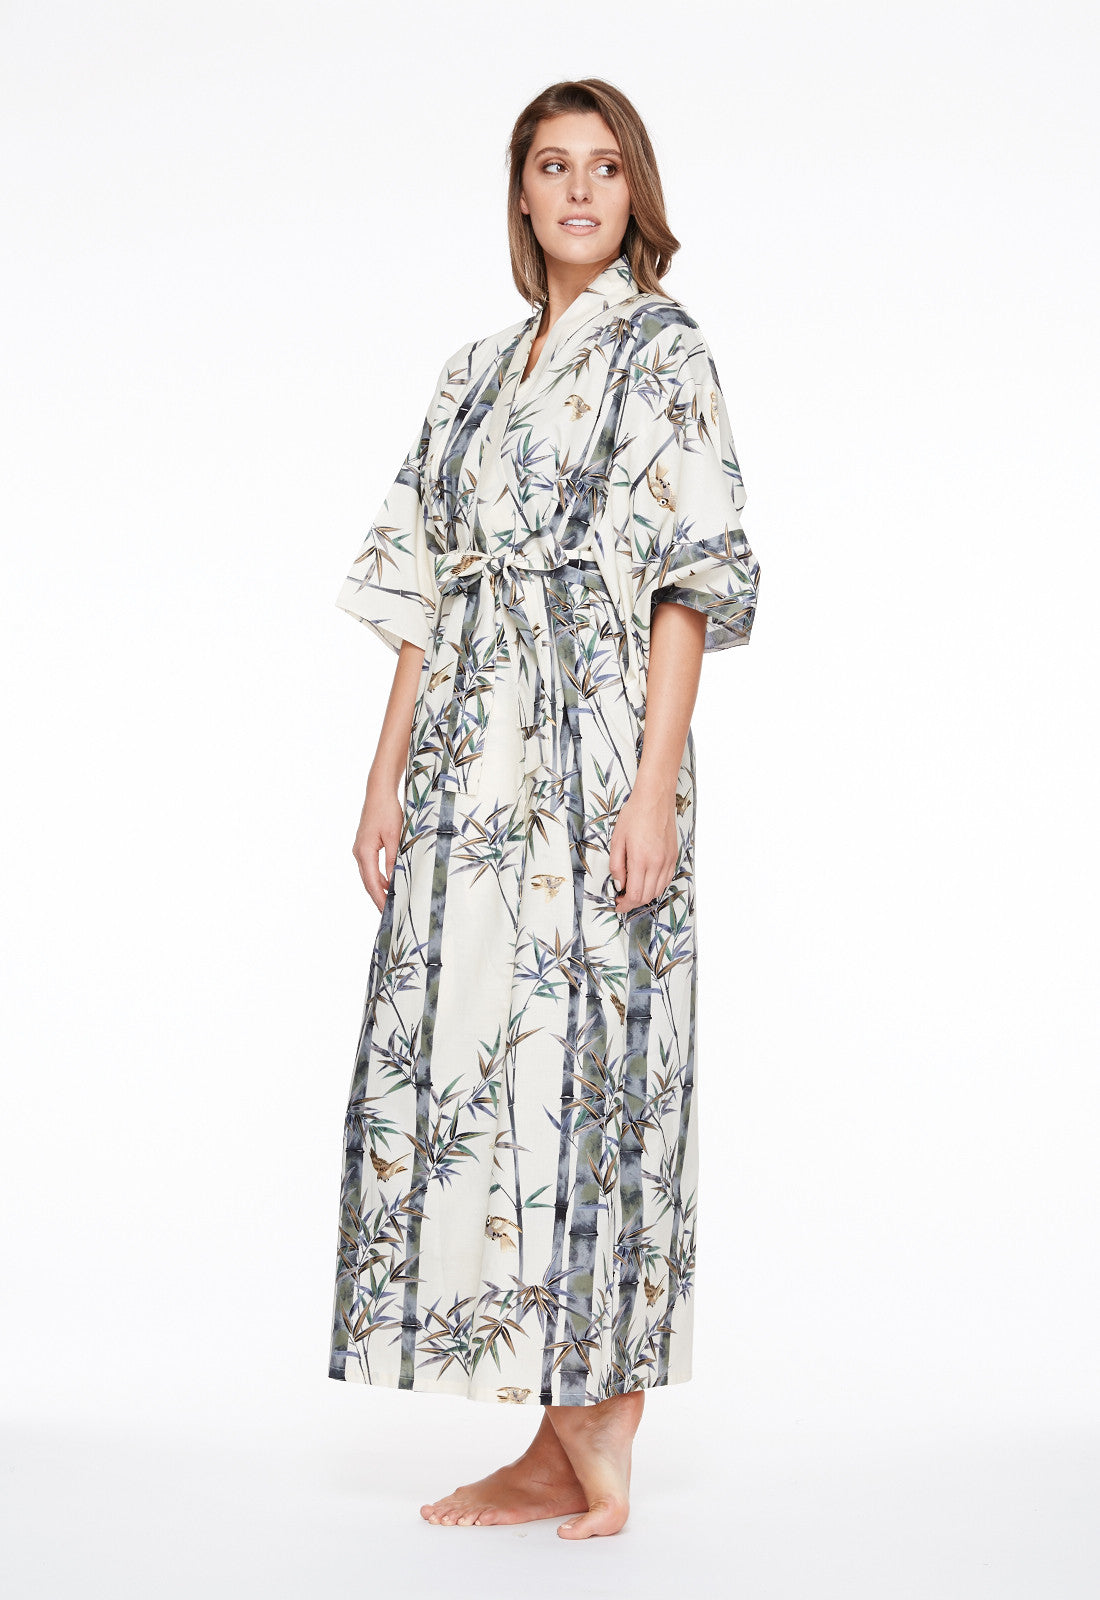 Exquisite Bamboo Womens Plus Size Cotton Kimono Robe - Beautiful ...